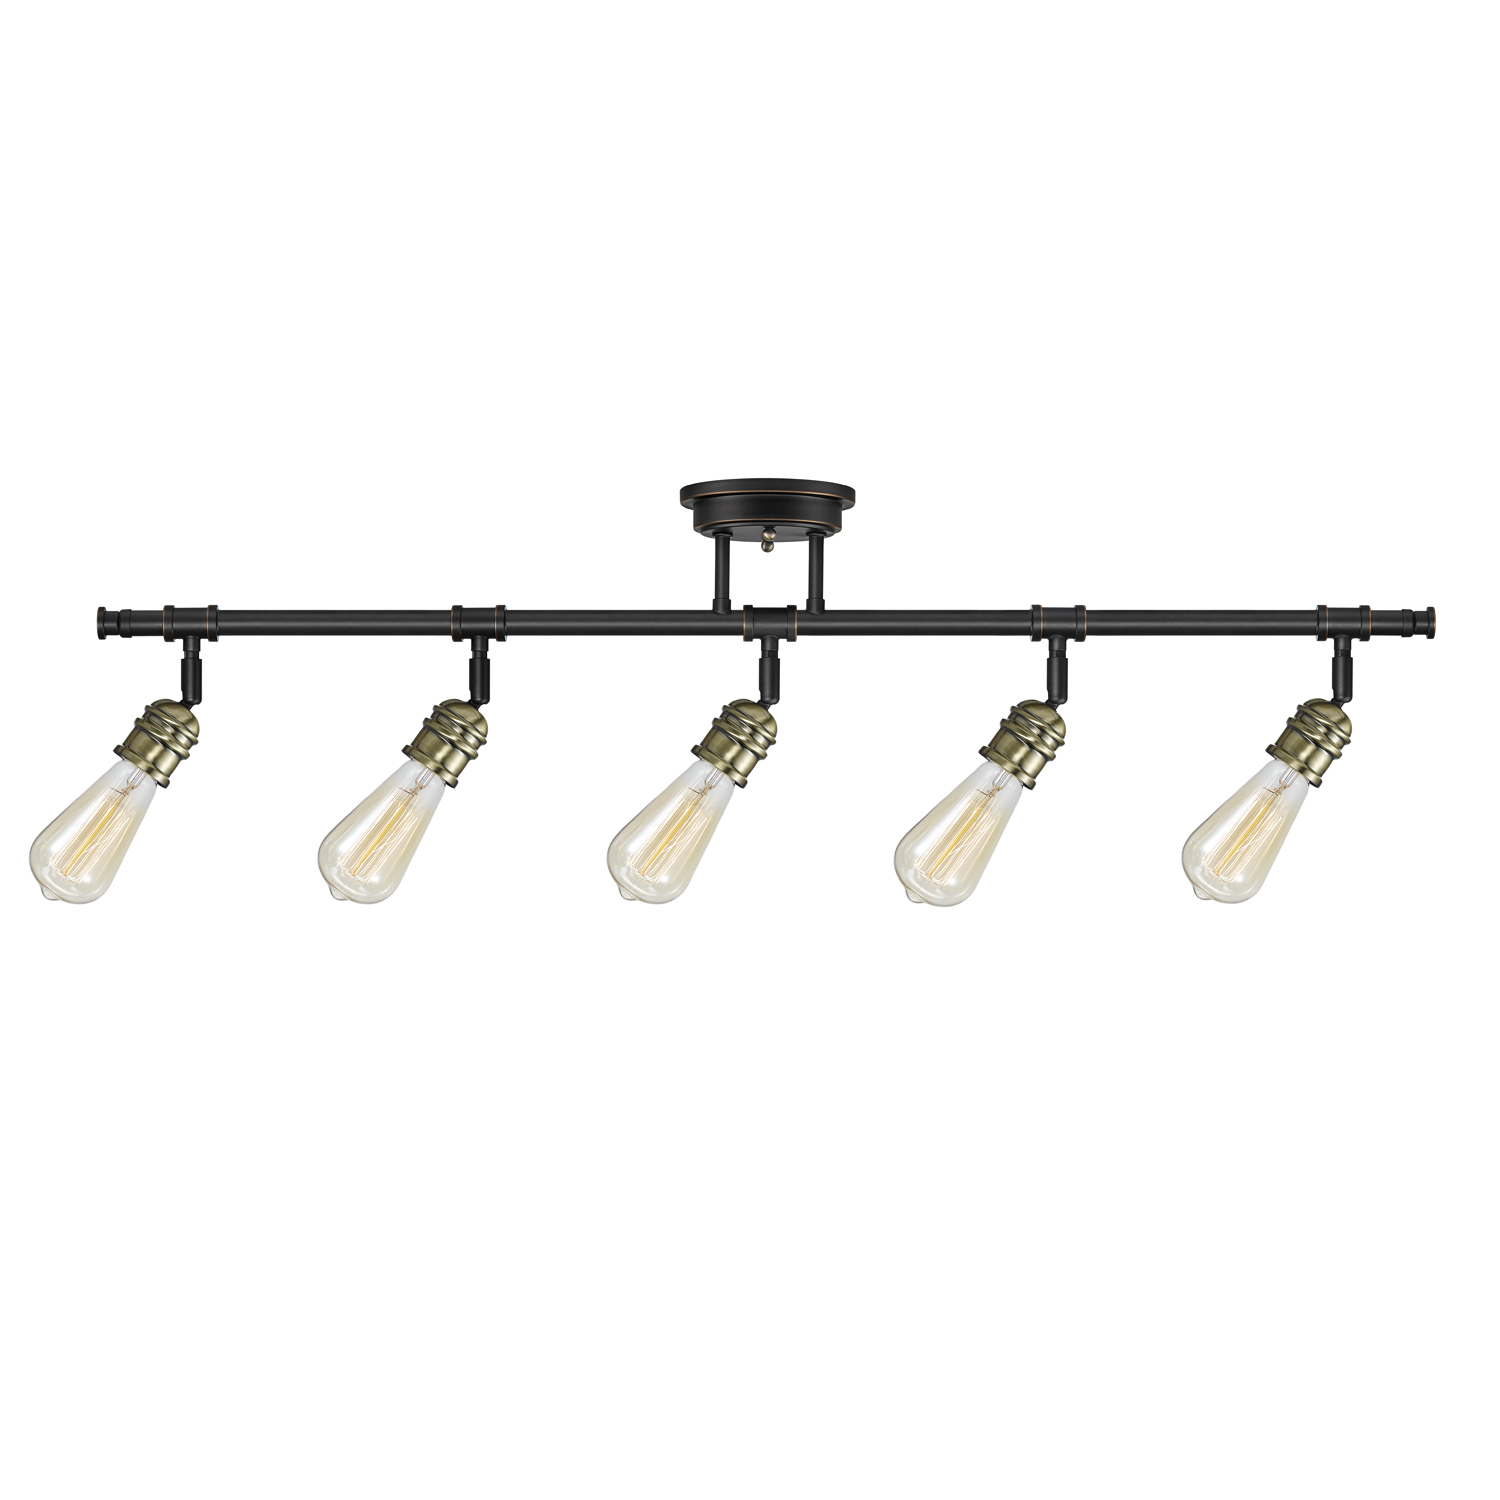 Globe Electric 60 Watt Rennes 5-Light Oil Rubbed Bronze Track Light, Bulbs Included by Globe Electric